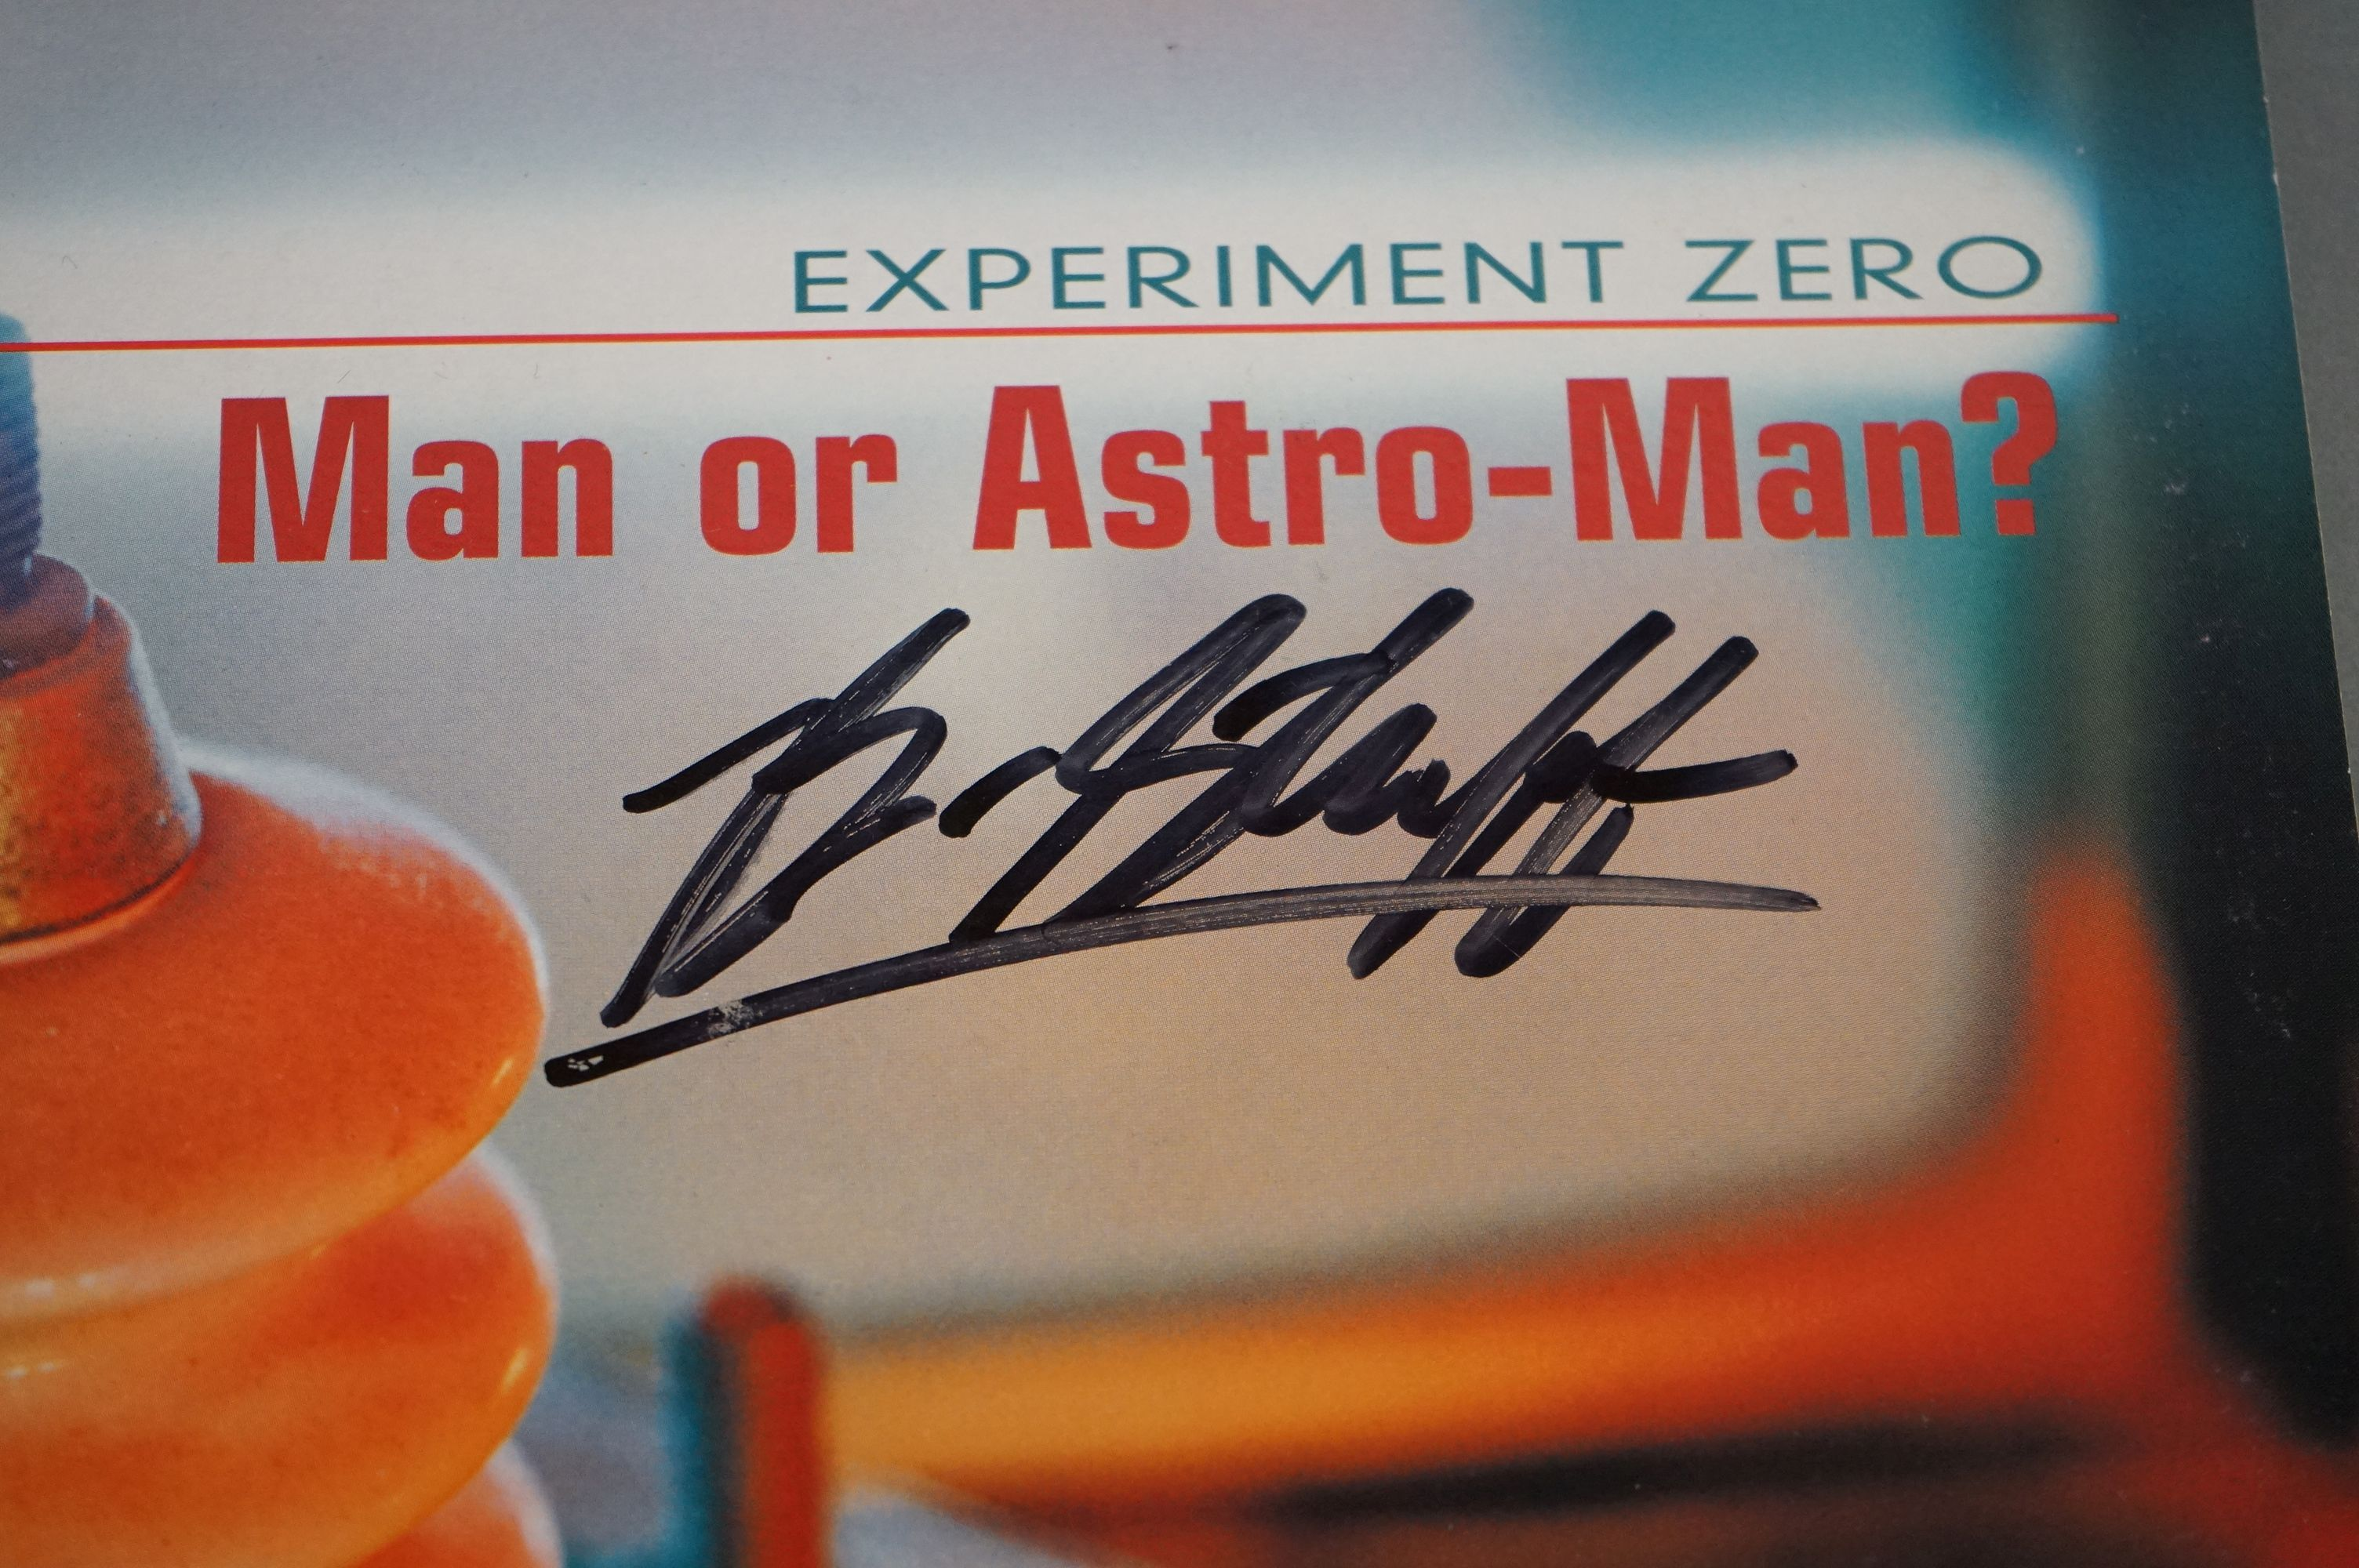 Signed Vinyl - Man Or Astro Man? Experiment Zero LP on Louder 12, yellow vinyl, some damage to - Image 3 of 9